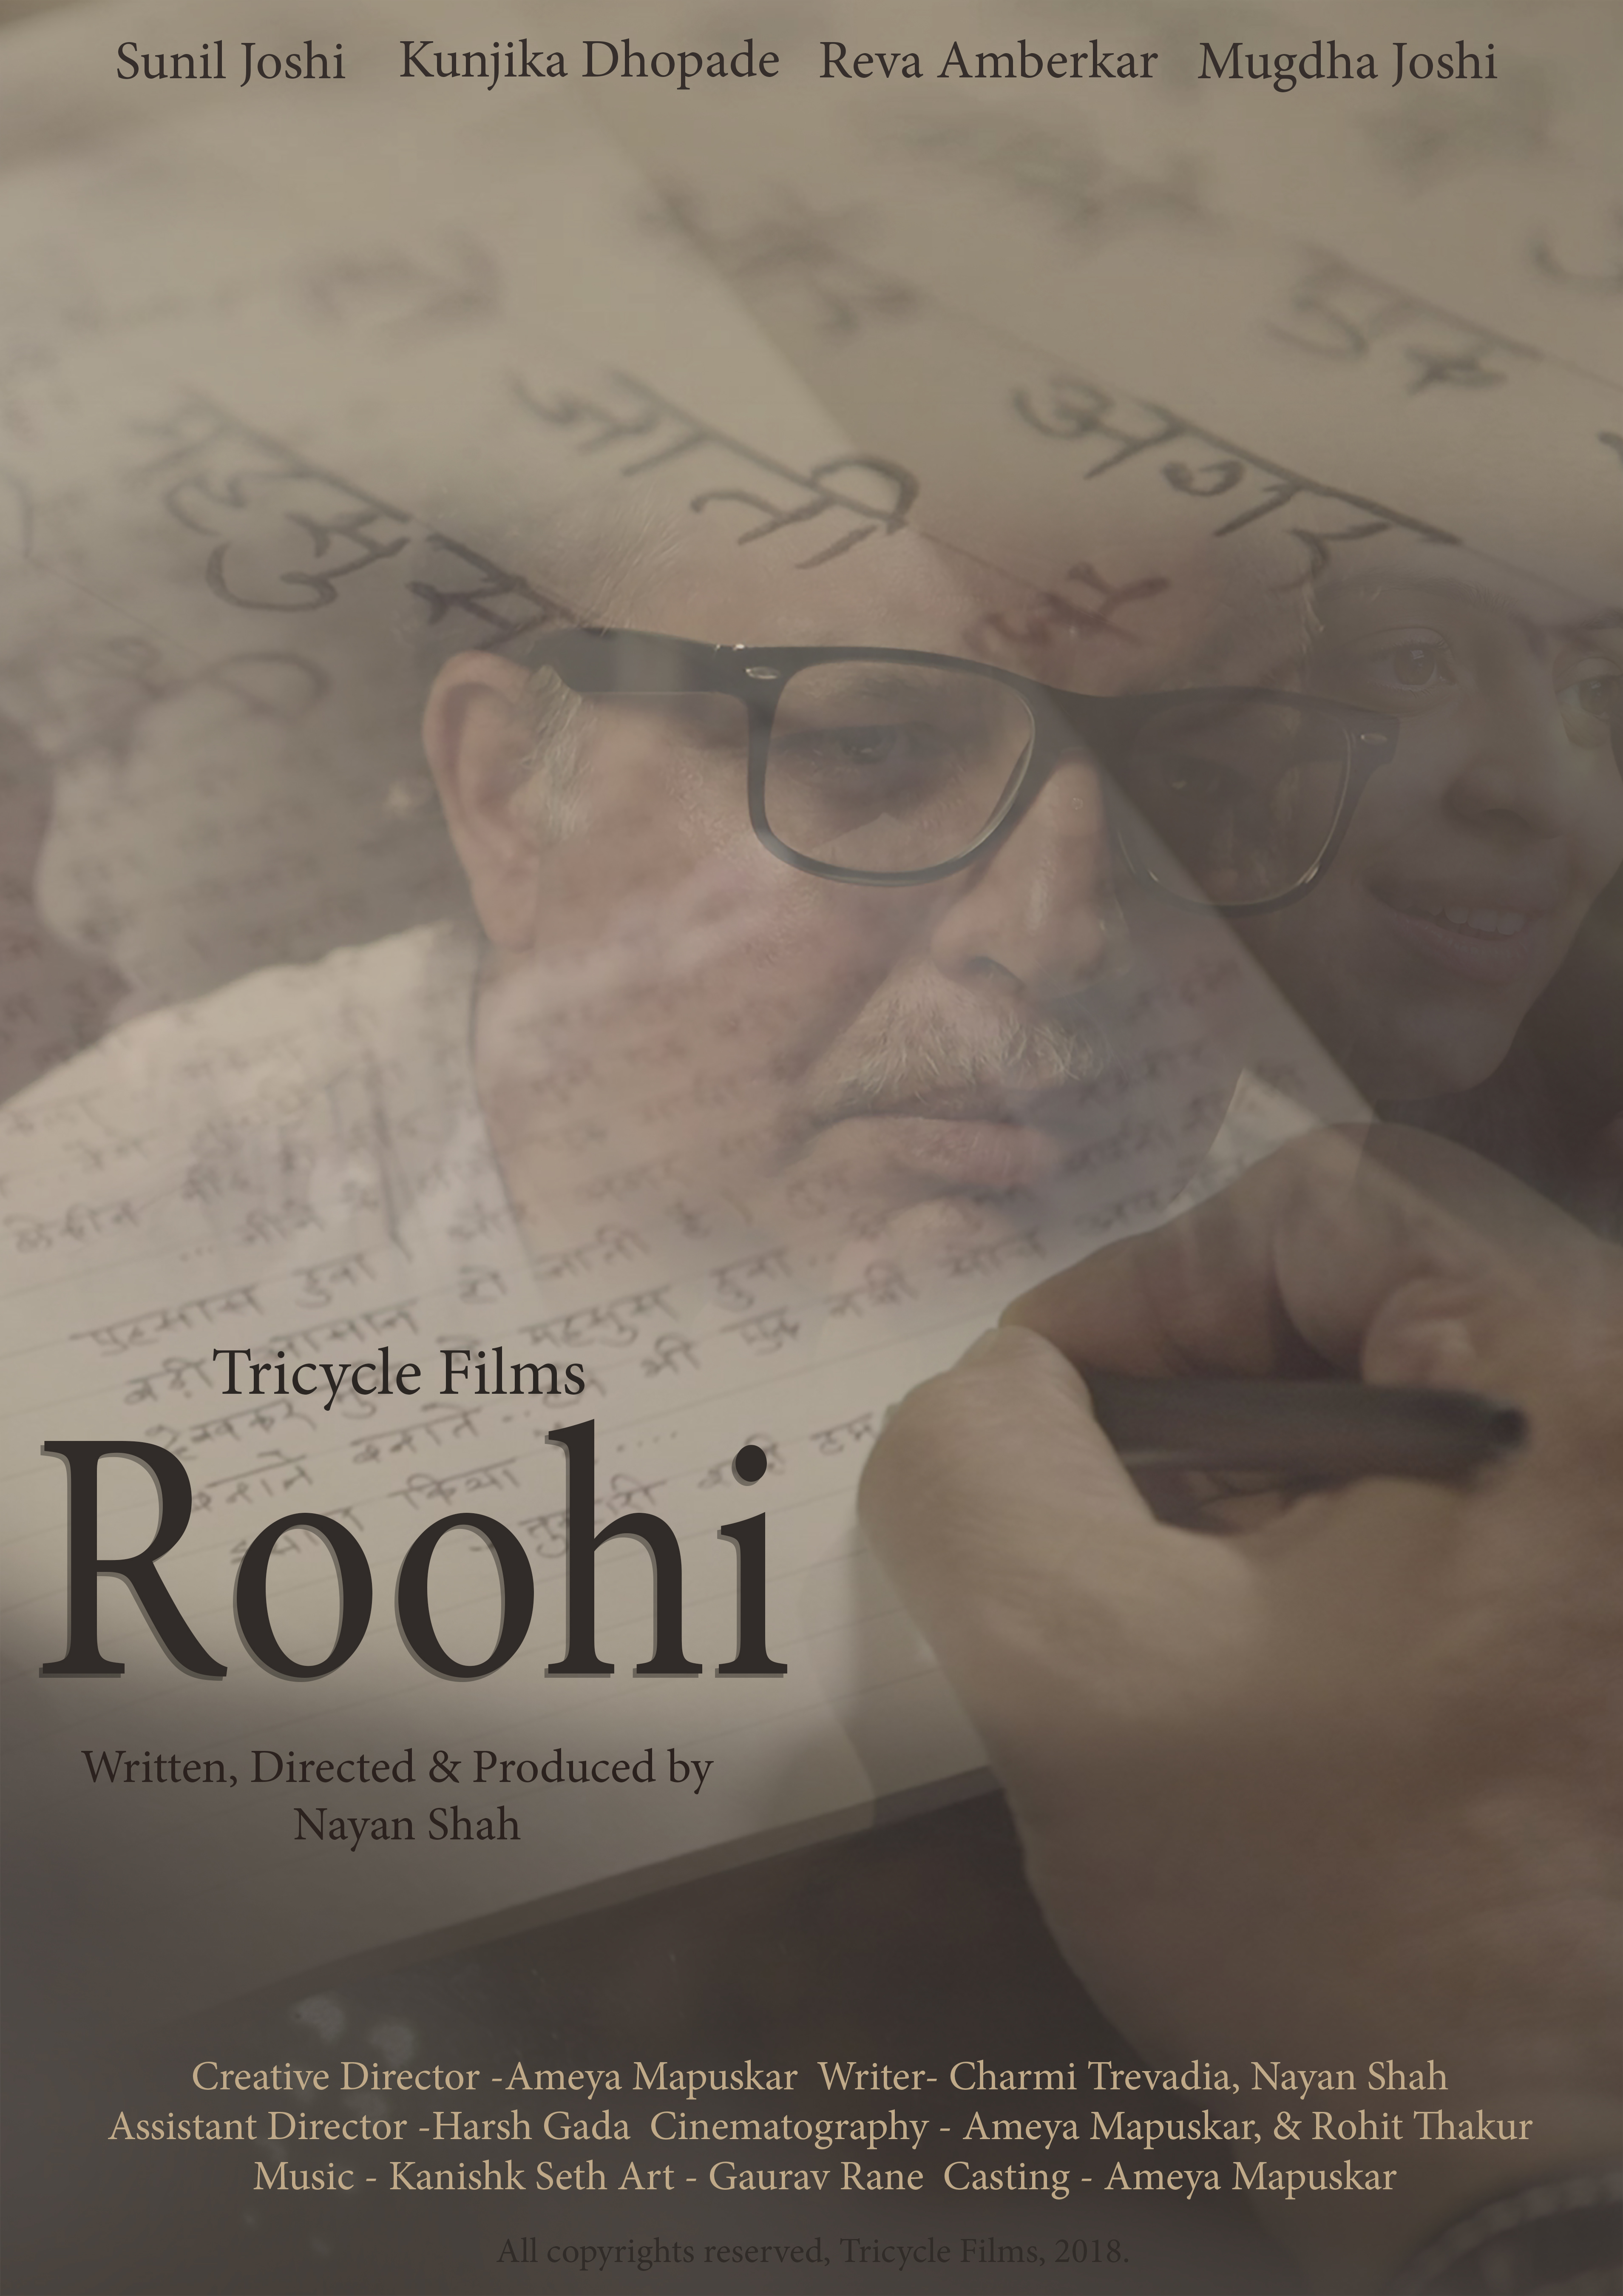 Film Roohi: On Love And Things That Matter